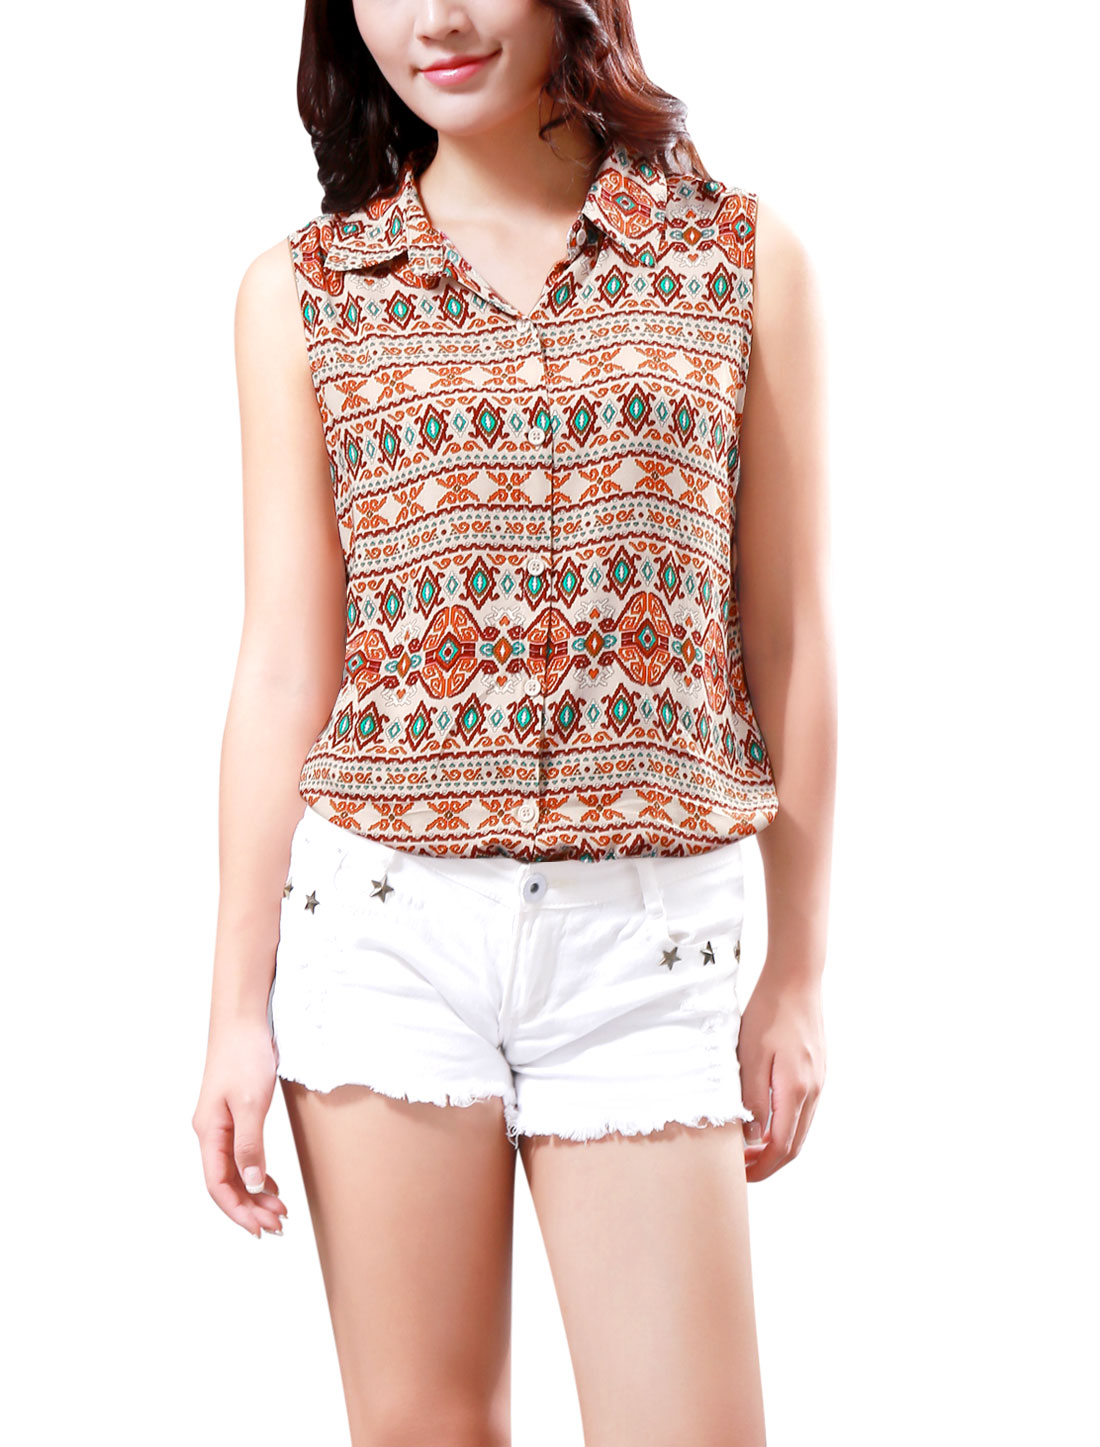 Women NEW Allover Geometric Print Sleeveless Trendy Shirt Beige XS